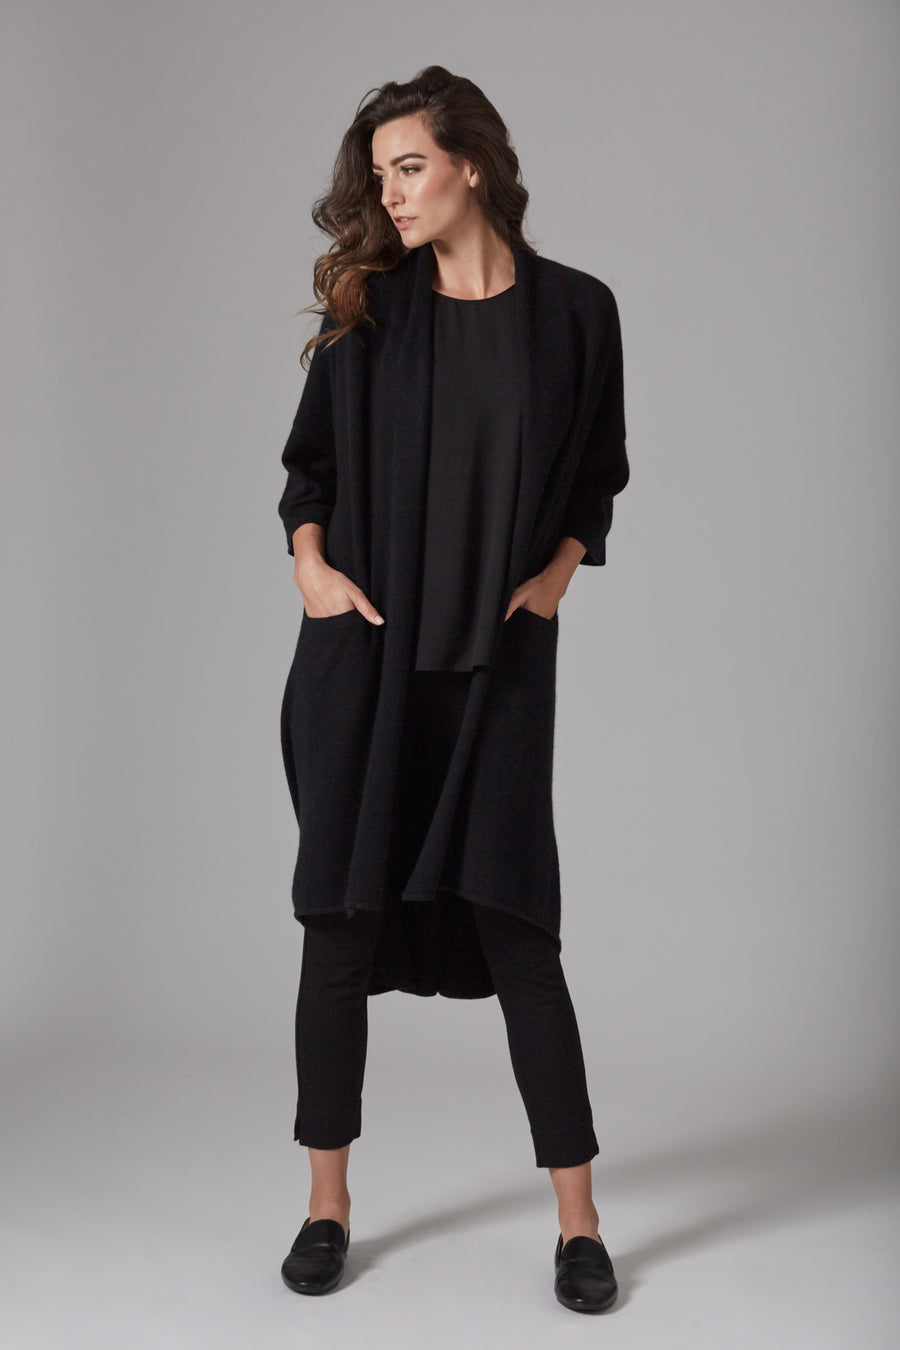 pine cashmere celine women's loose fit 100% pure cashmere cardigan coat in black